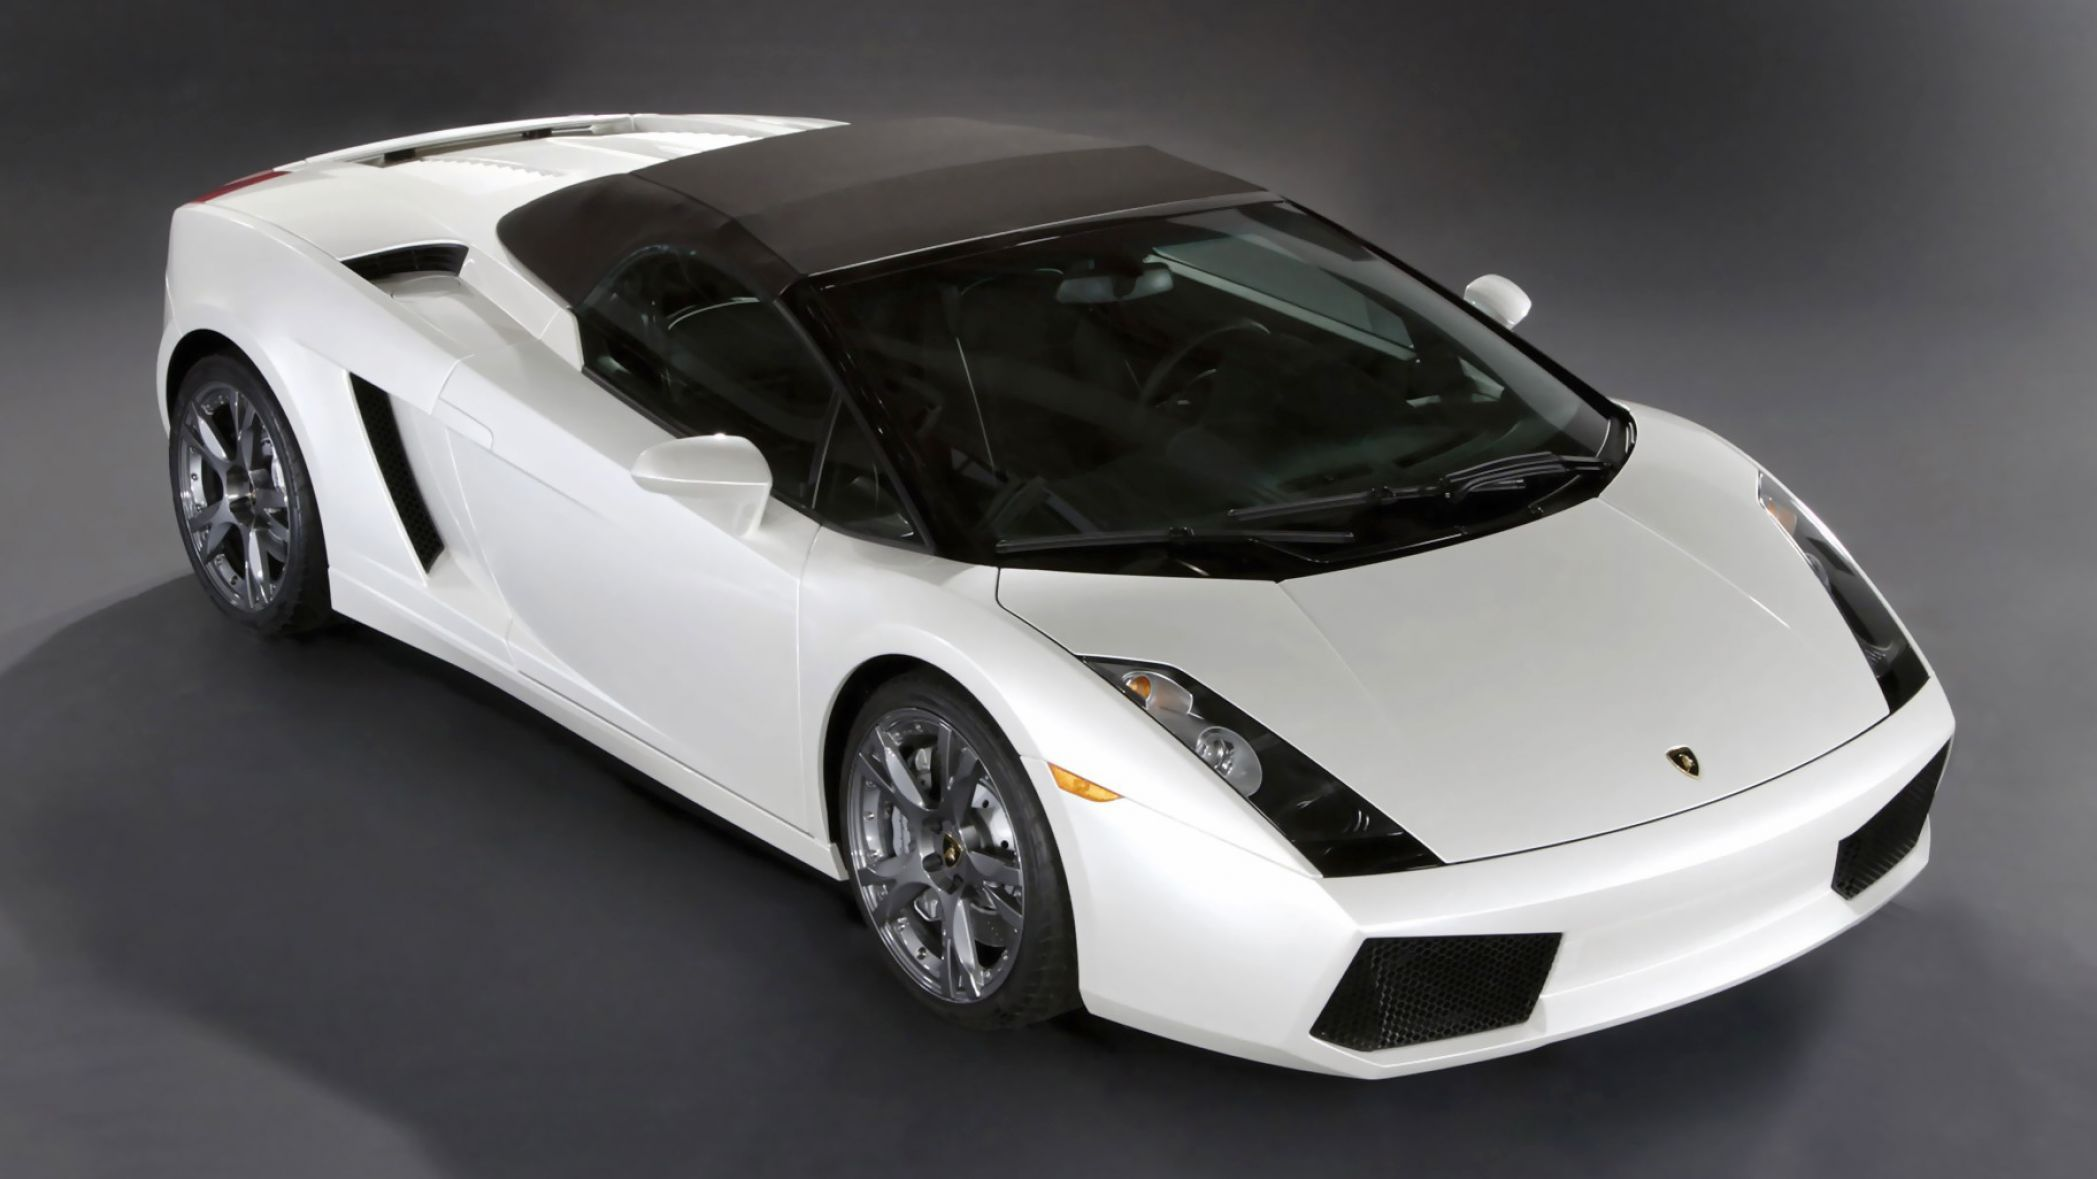 2006 Lamborghini Gallardo Spyder   White   Side Angle   Top Up   Wallpaper